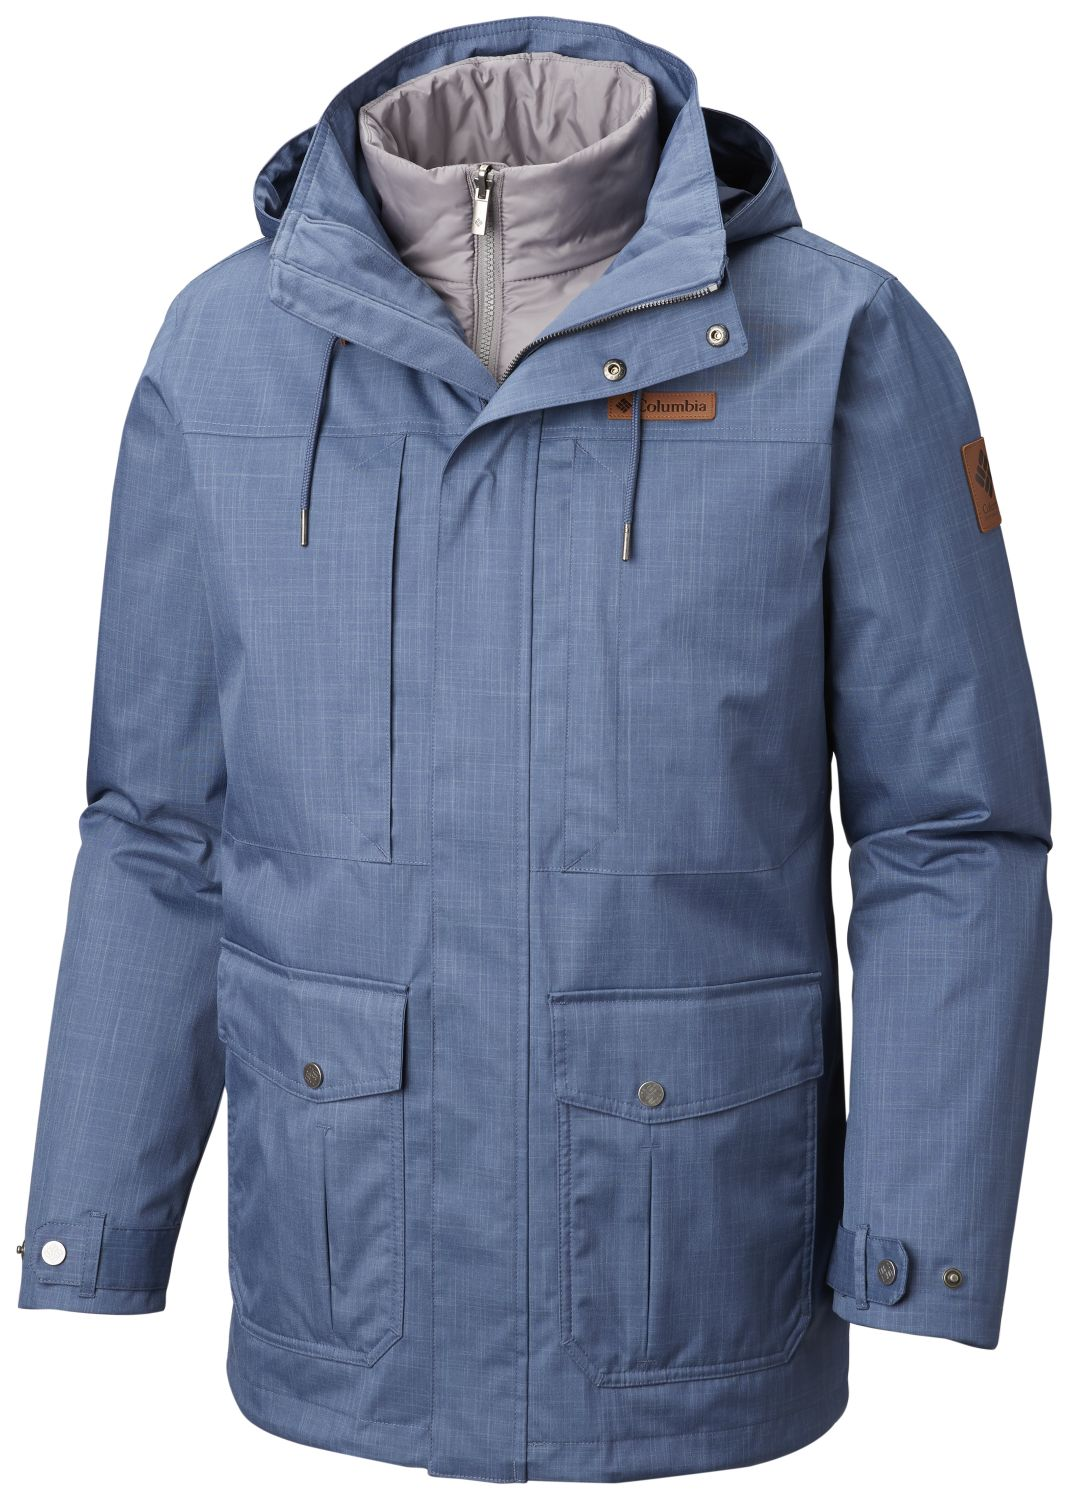 ABRIGO HORIZONS PINE INTERCHANGE JACKET 100% POLYESTER Omni-TECH WATERPROOF BREATHABLE OmnI-HEAT THERMAL REFLECTIVE INSULATED LINER DARK MOUNTAIN